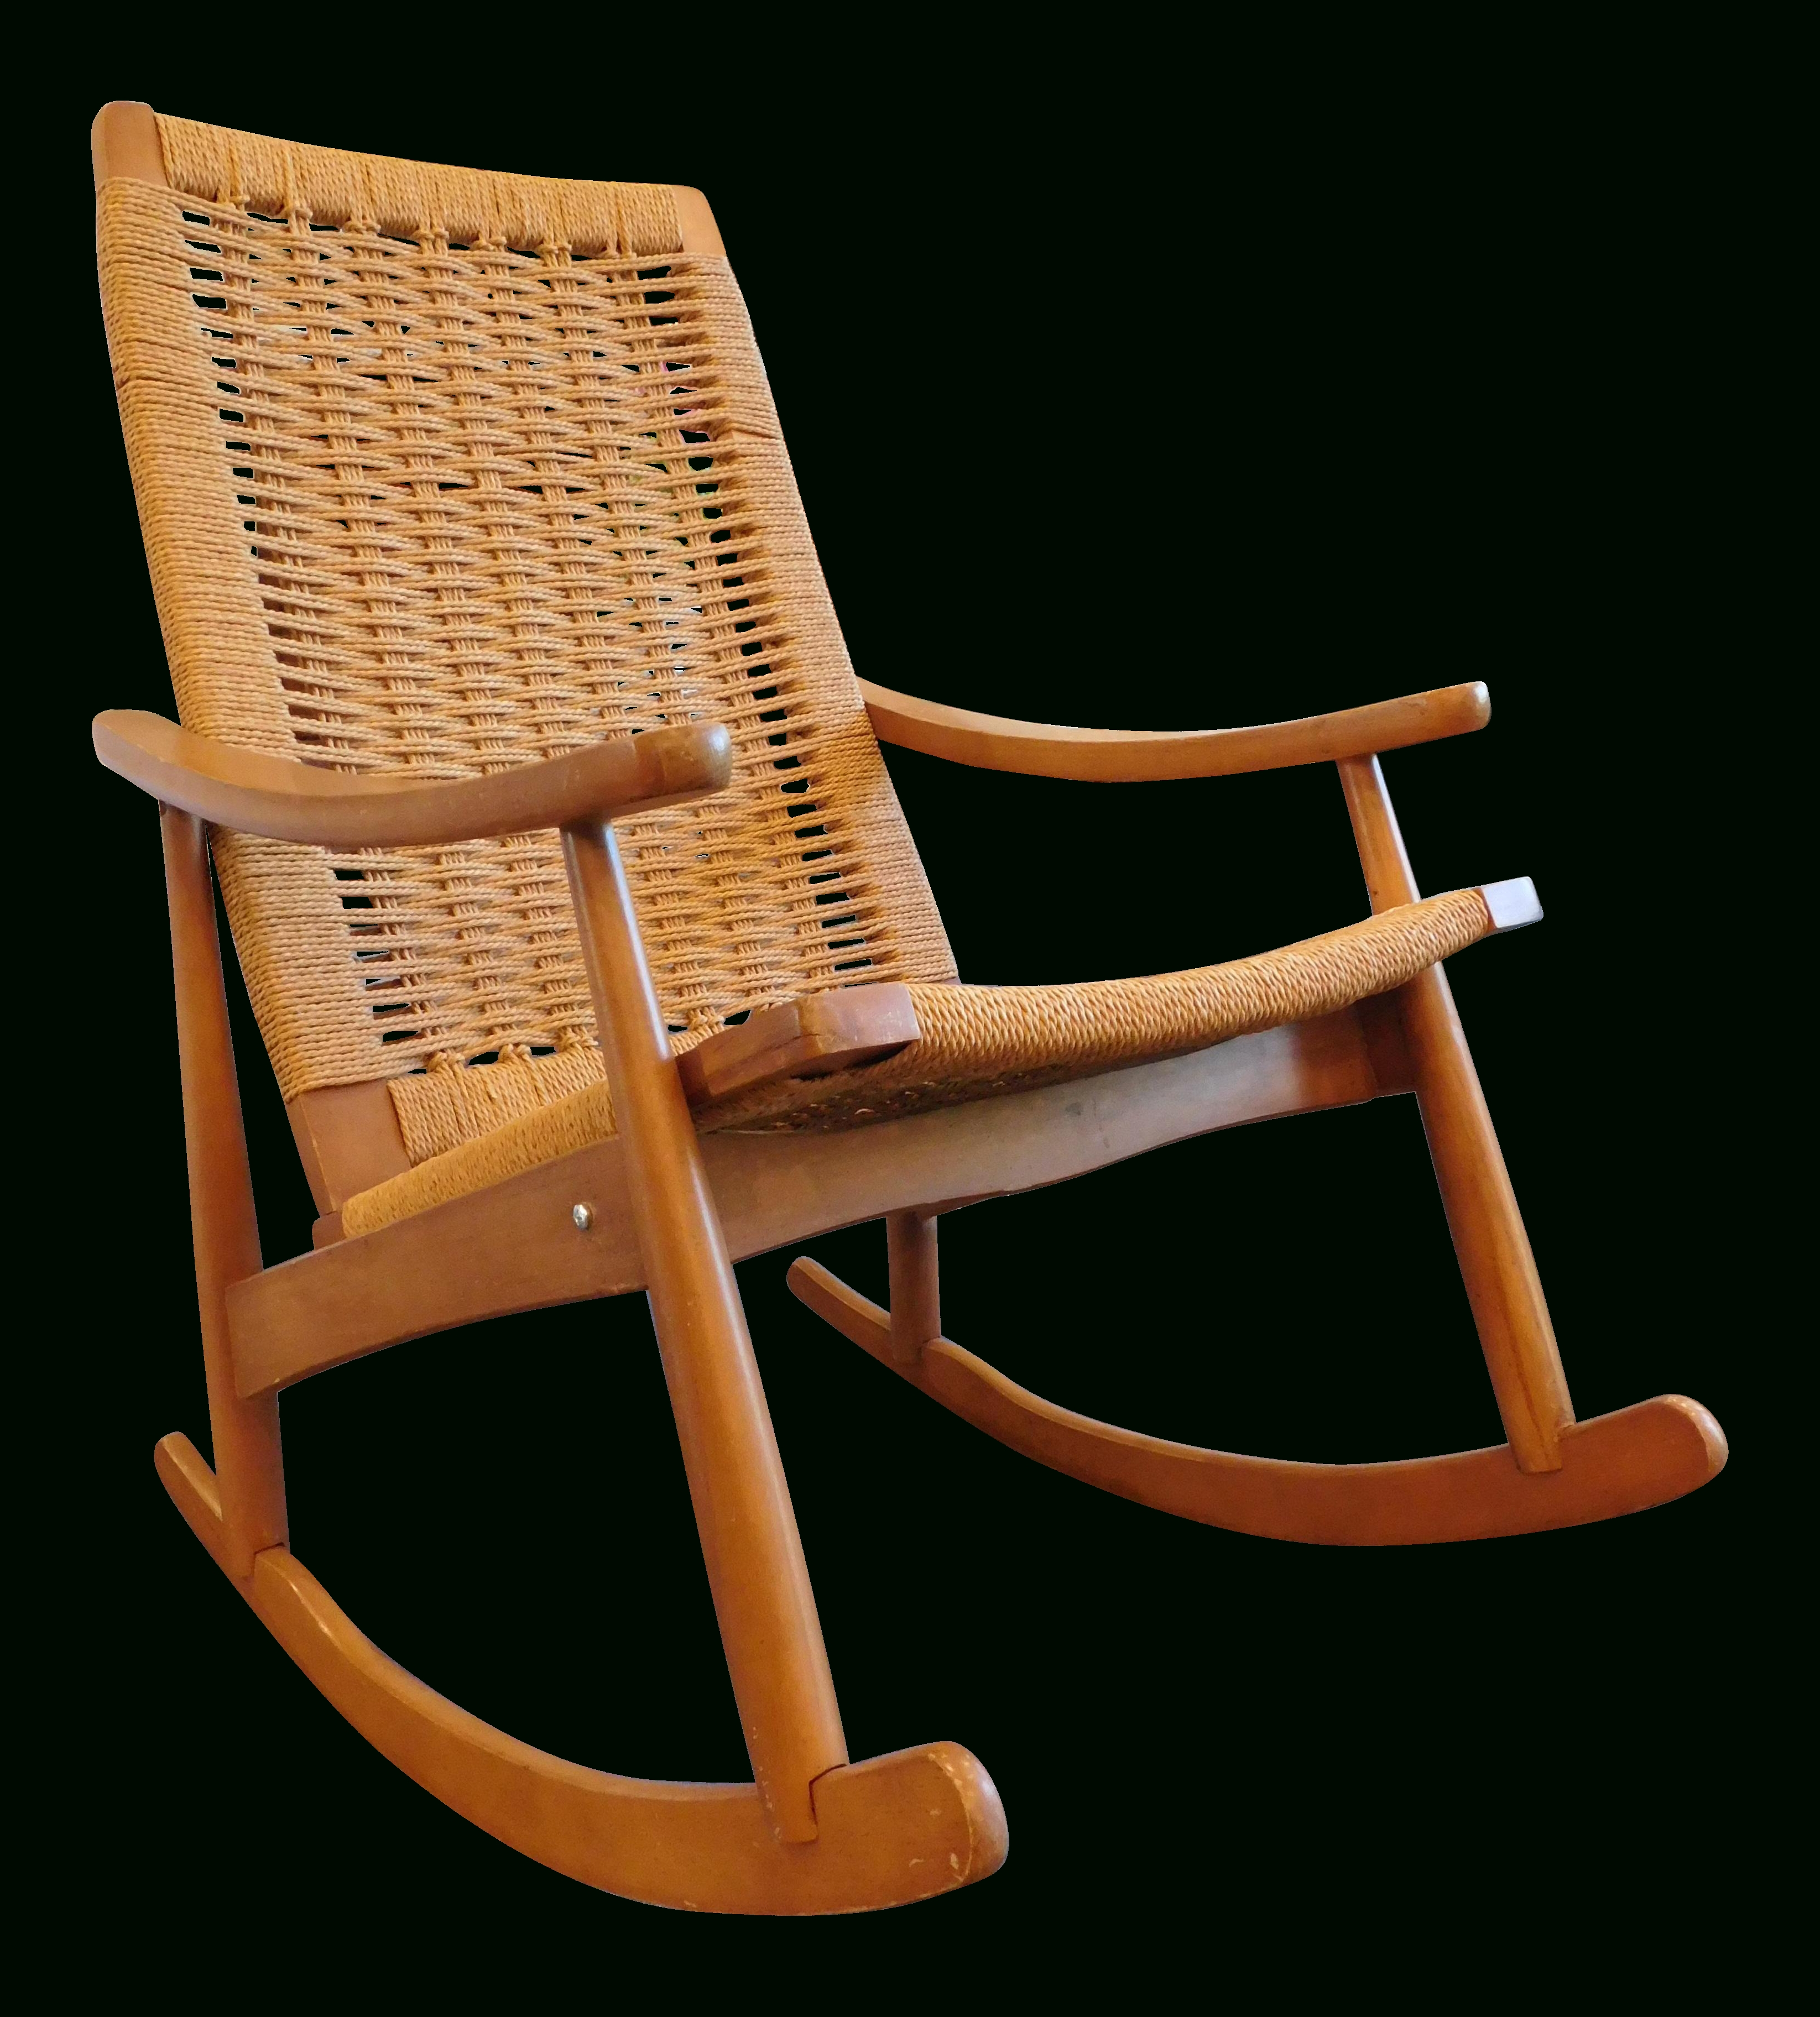 Widely Used Vintage Wicker Rocking Chairs Intended For Vintage Yugoslavian Hans Wegner Style Wicker Rocking Chair (View 14 of 15)